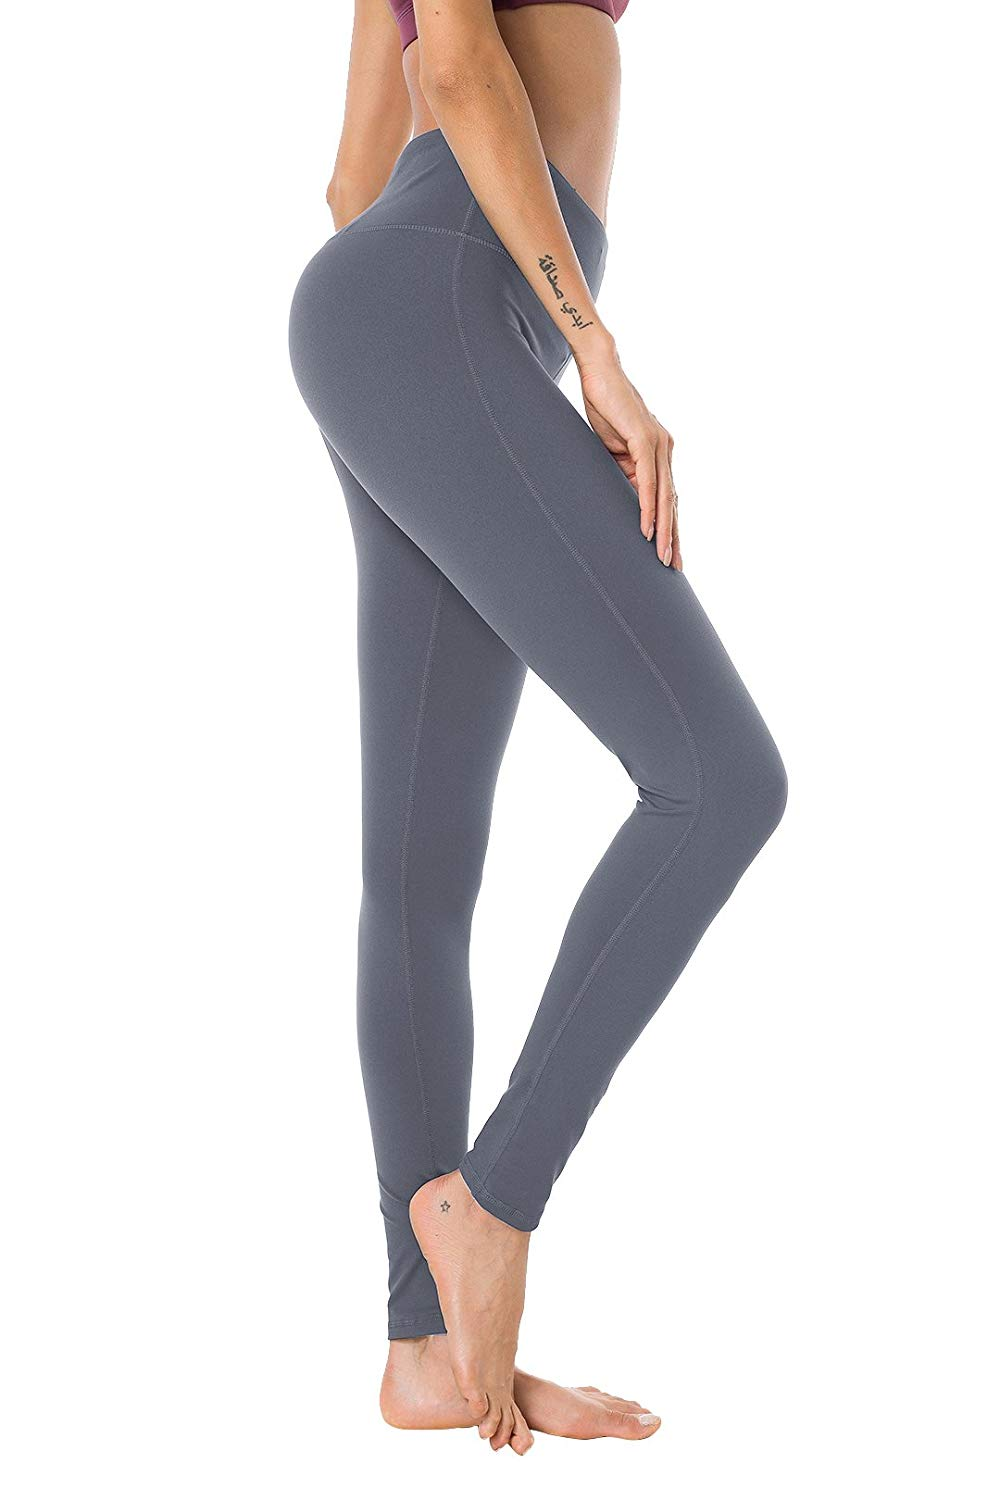 7 Pieces  Women Power  Yoga Leggings Pants2019 Cargo Pants  Straight